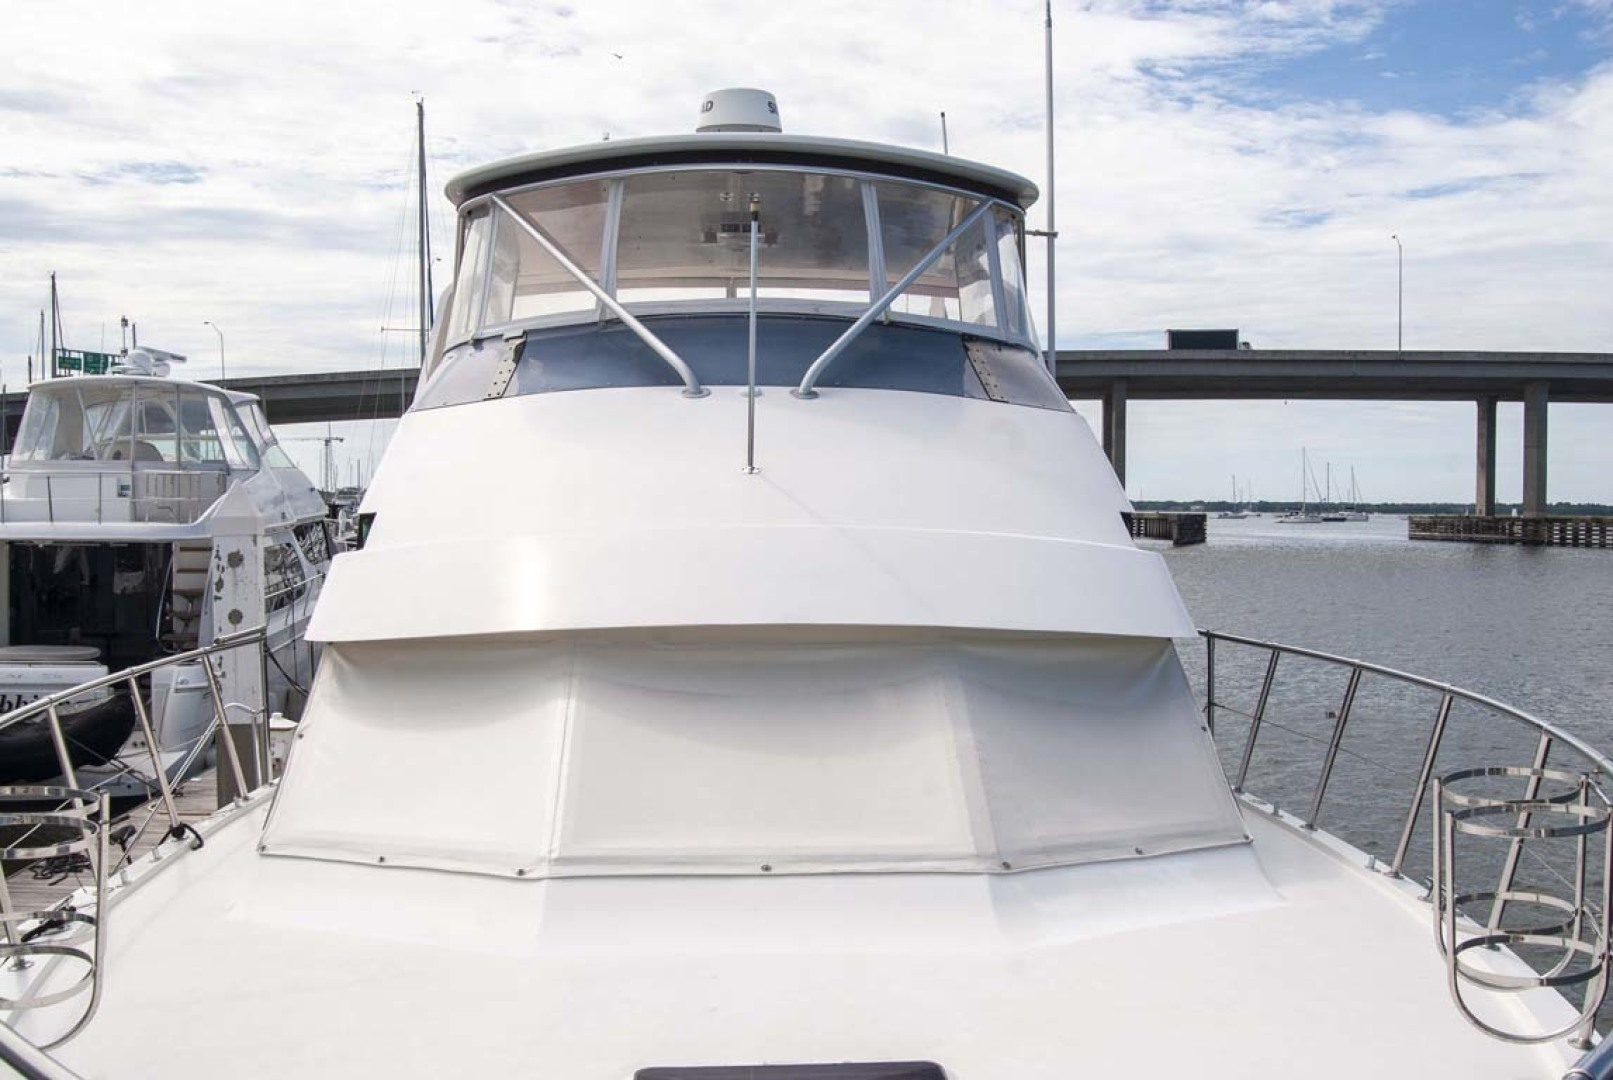 Hatteras-52 Cockpit Motor Yacht 1994-Believe It Mount Pleasant-South Carolina-United States-1415503 | Thumbnail